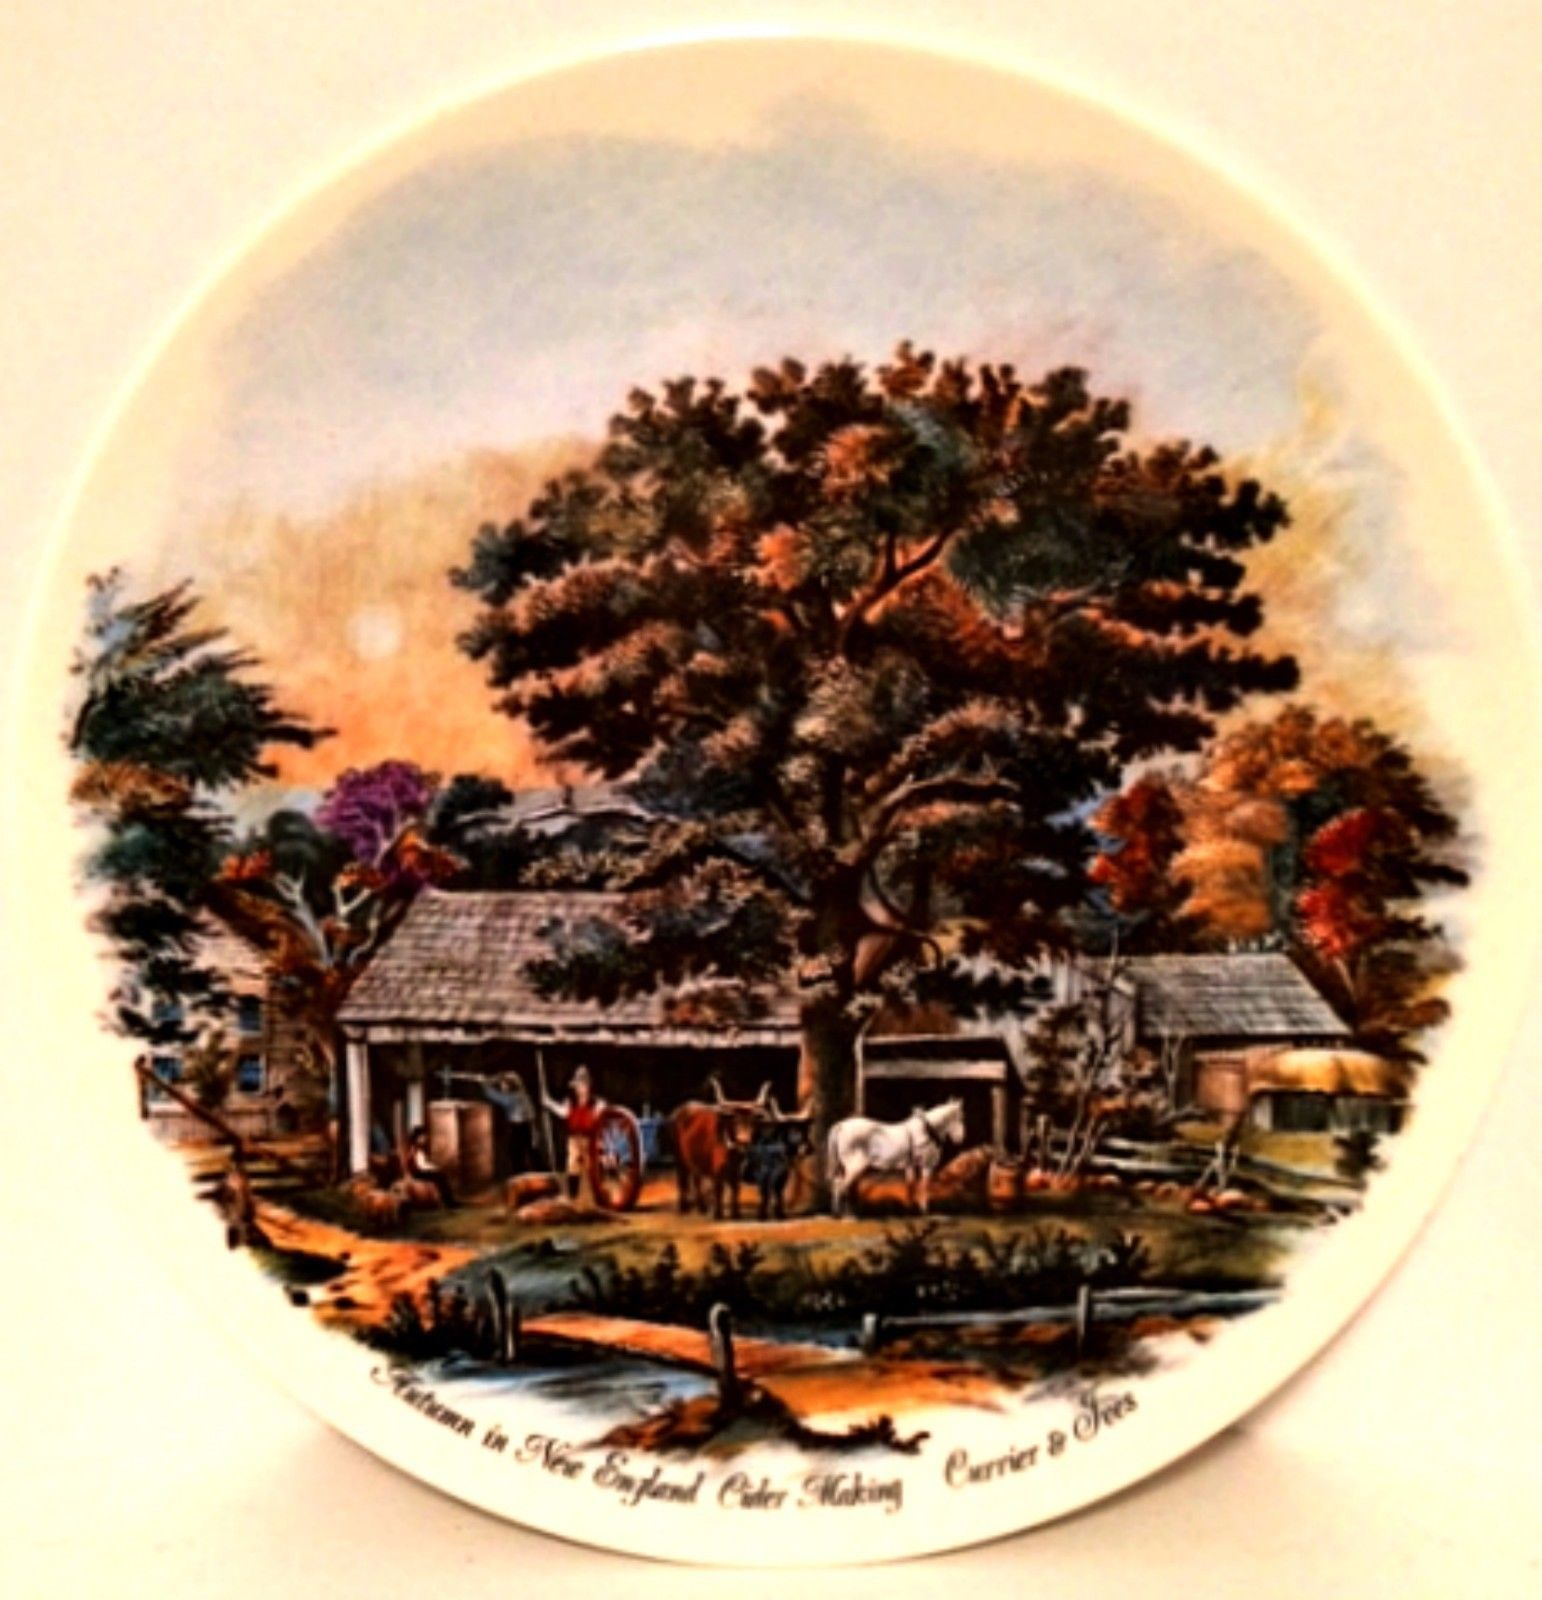 Decorator Plate Currier & Ives Autumn in New England Cider Making 9 inches